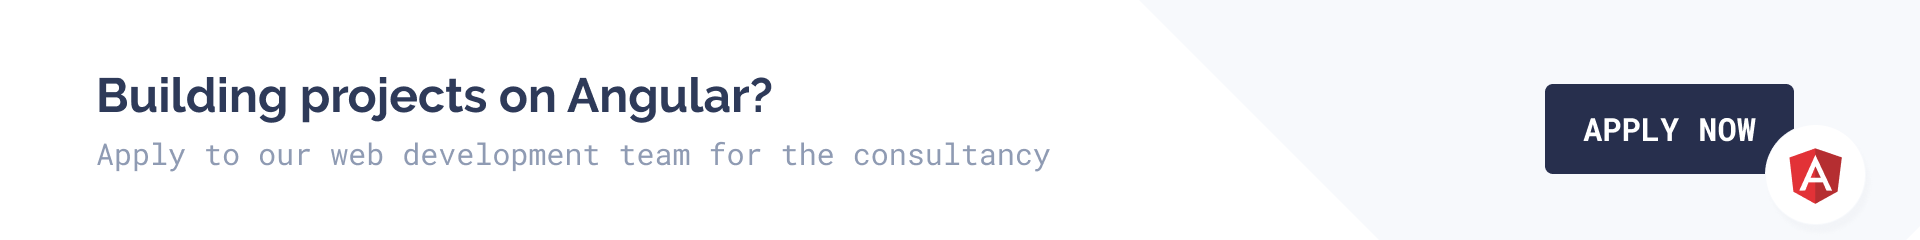 Apply to our web development team for the consultancy